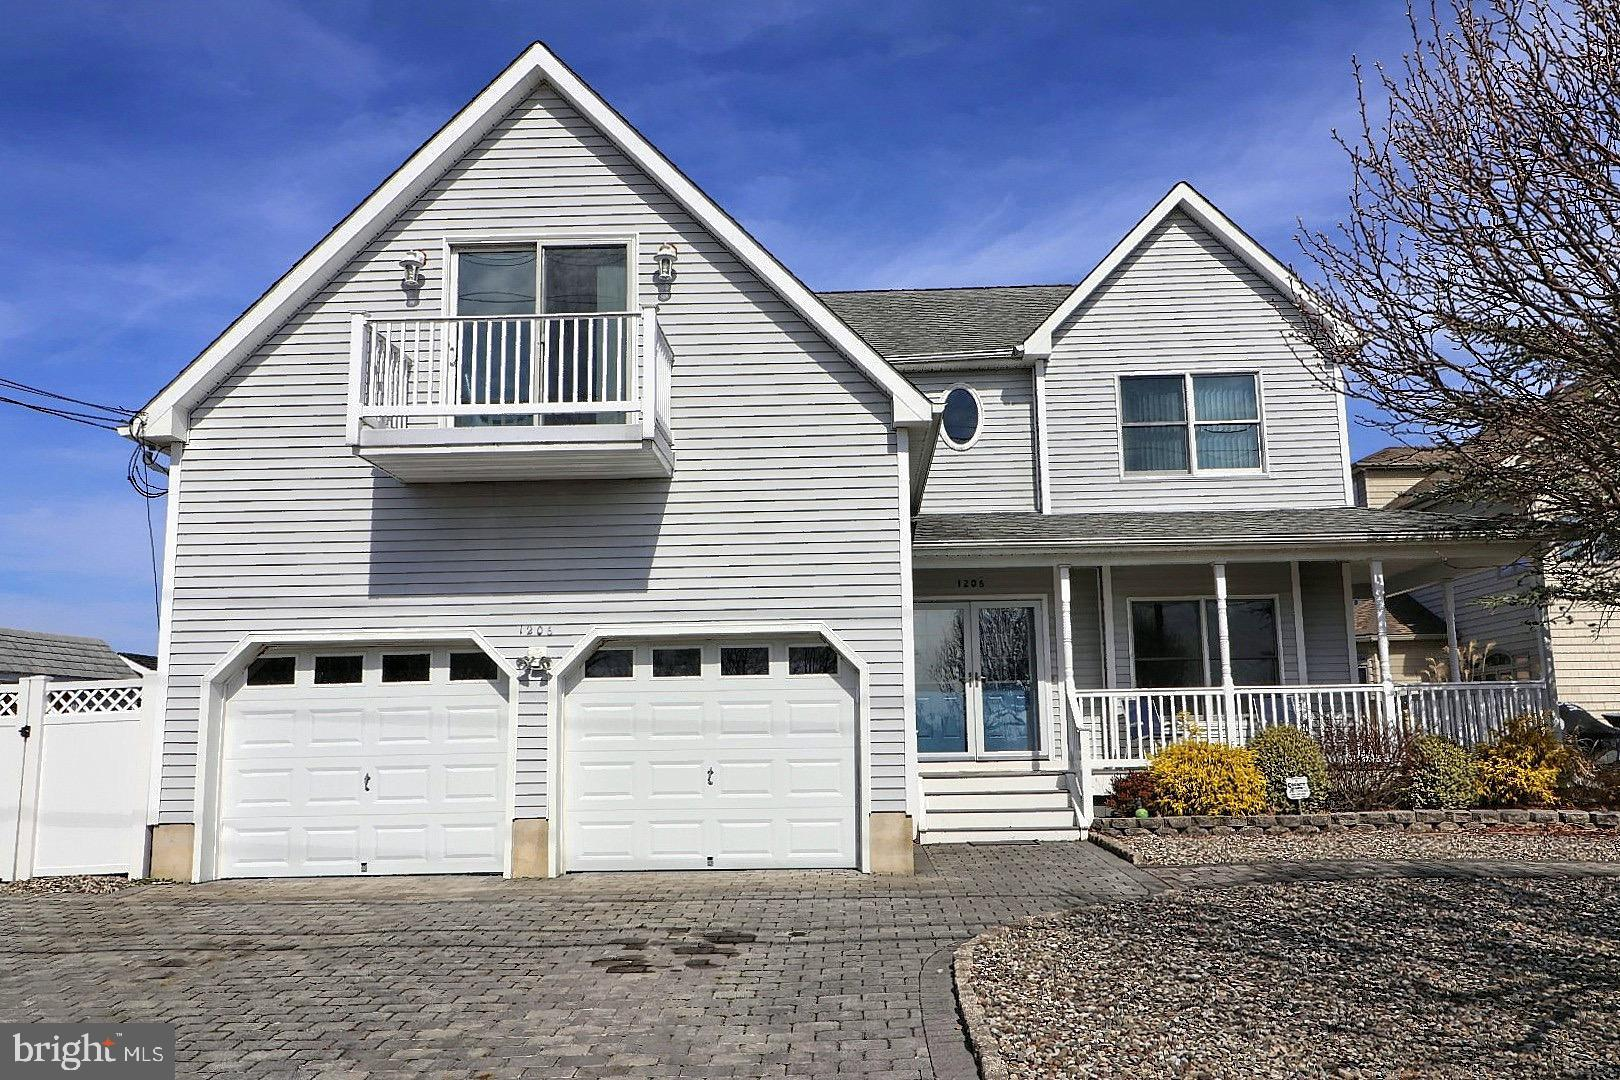 1206 ORLANDO DRIVE, FORKED RIVER, NJ 08731